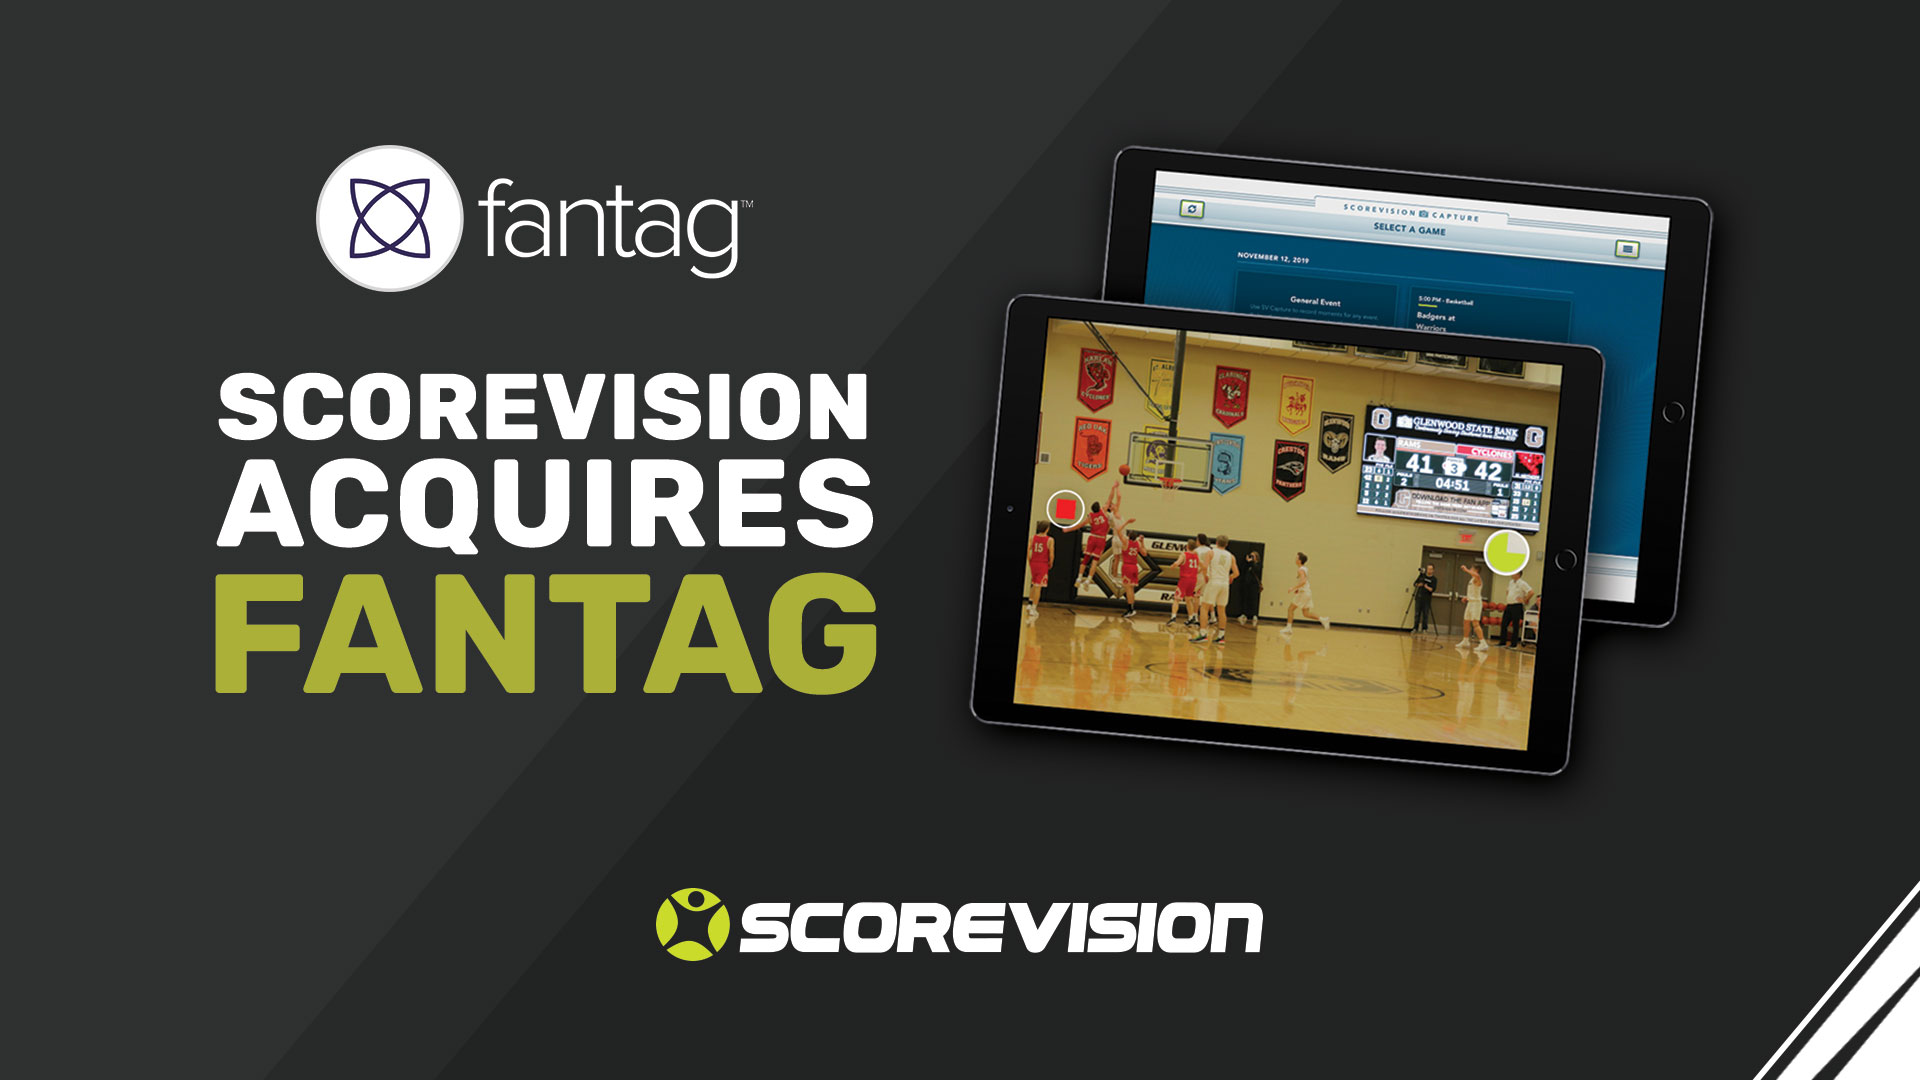 ScoreVision Acquires Fantag to Bring Cloud-Based Video Capture Solutions to Fans Everywhere